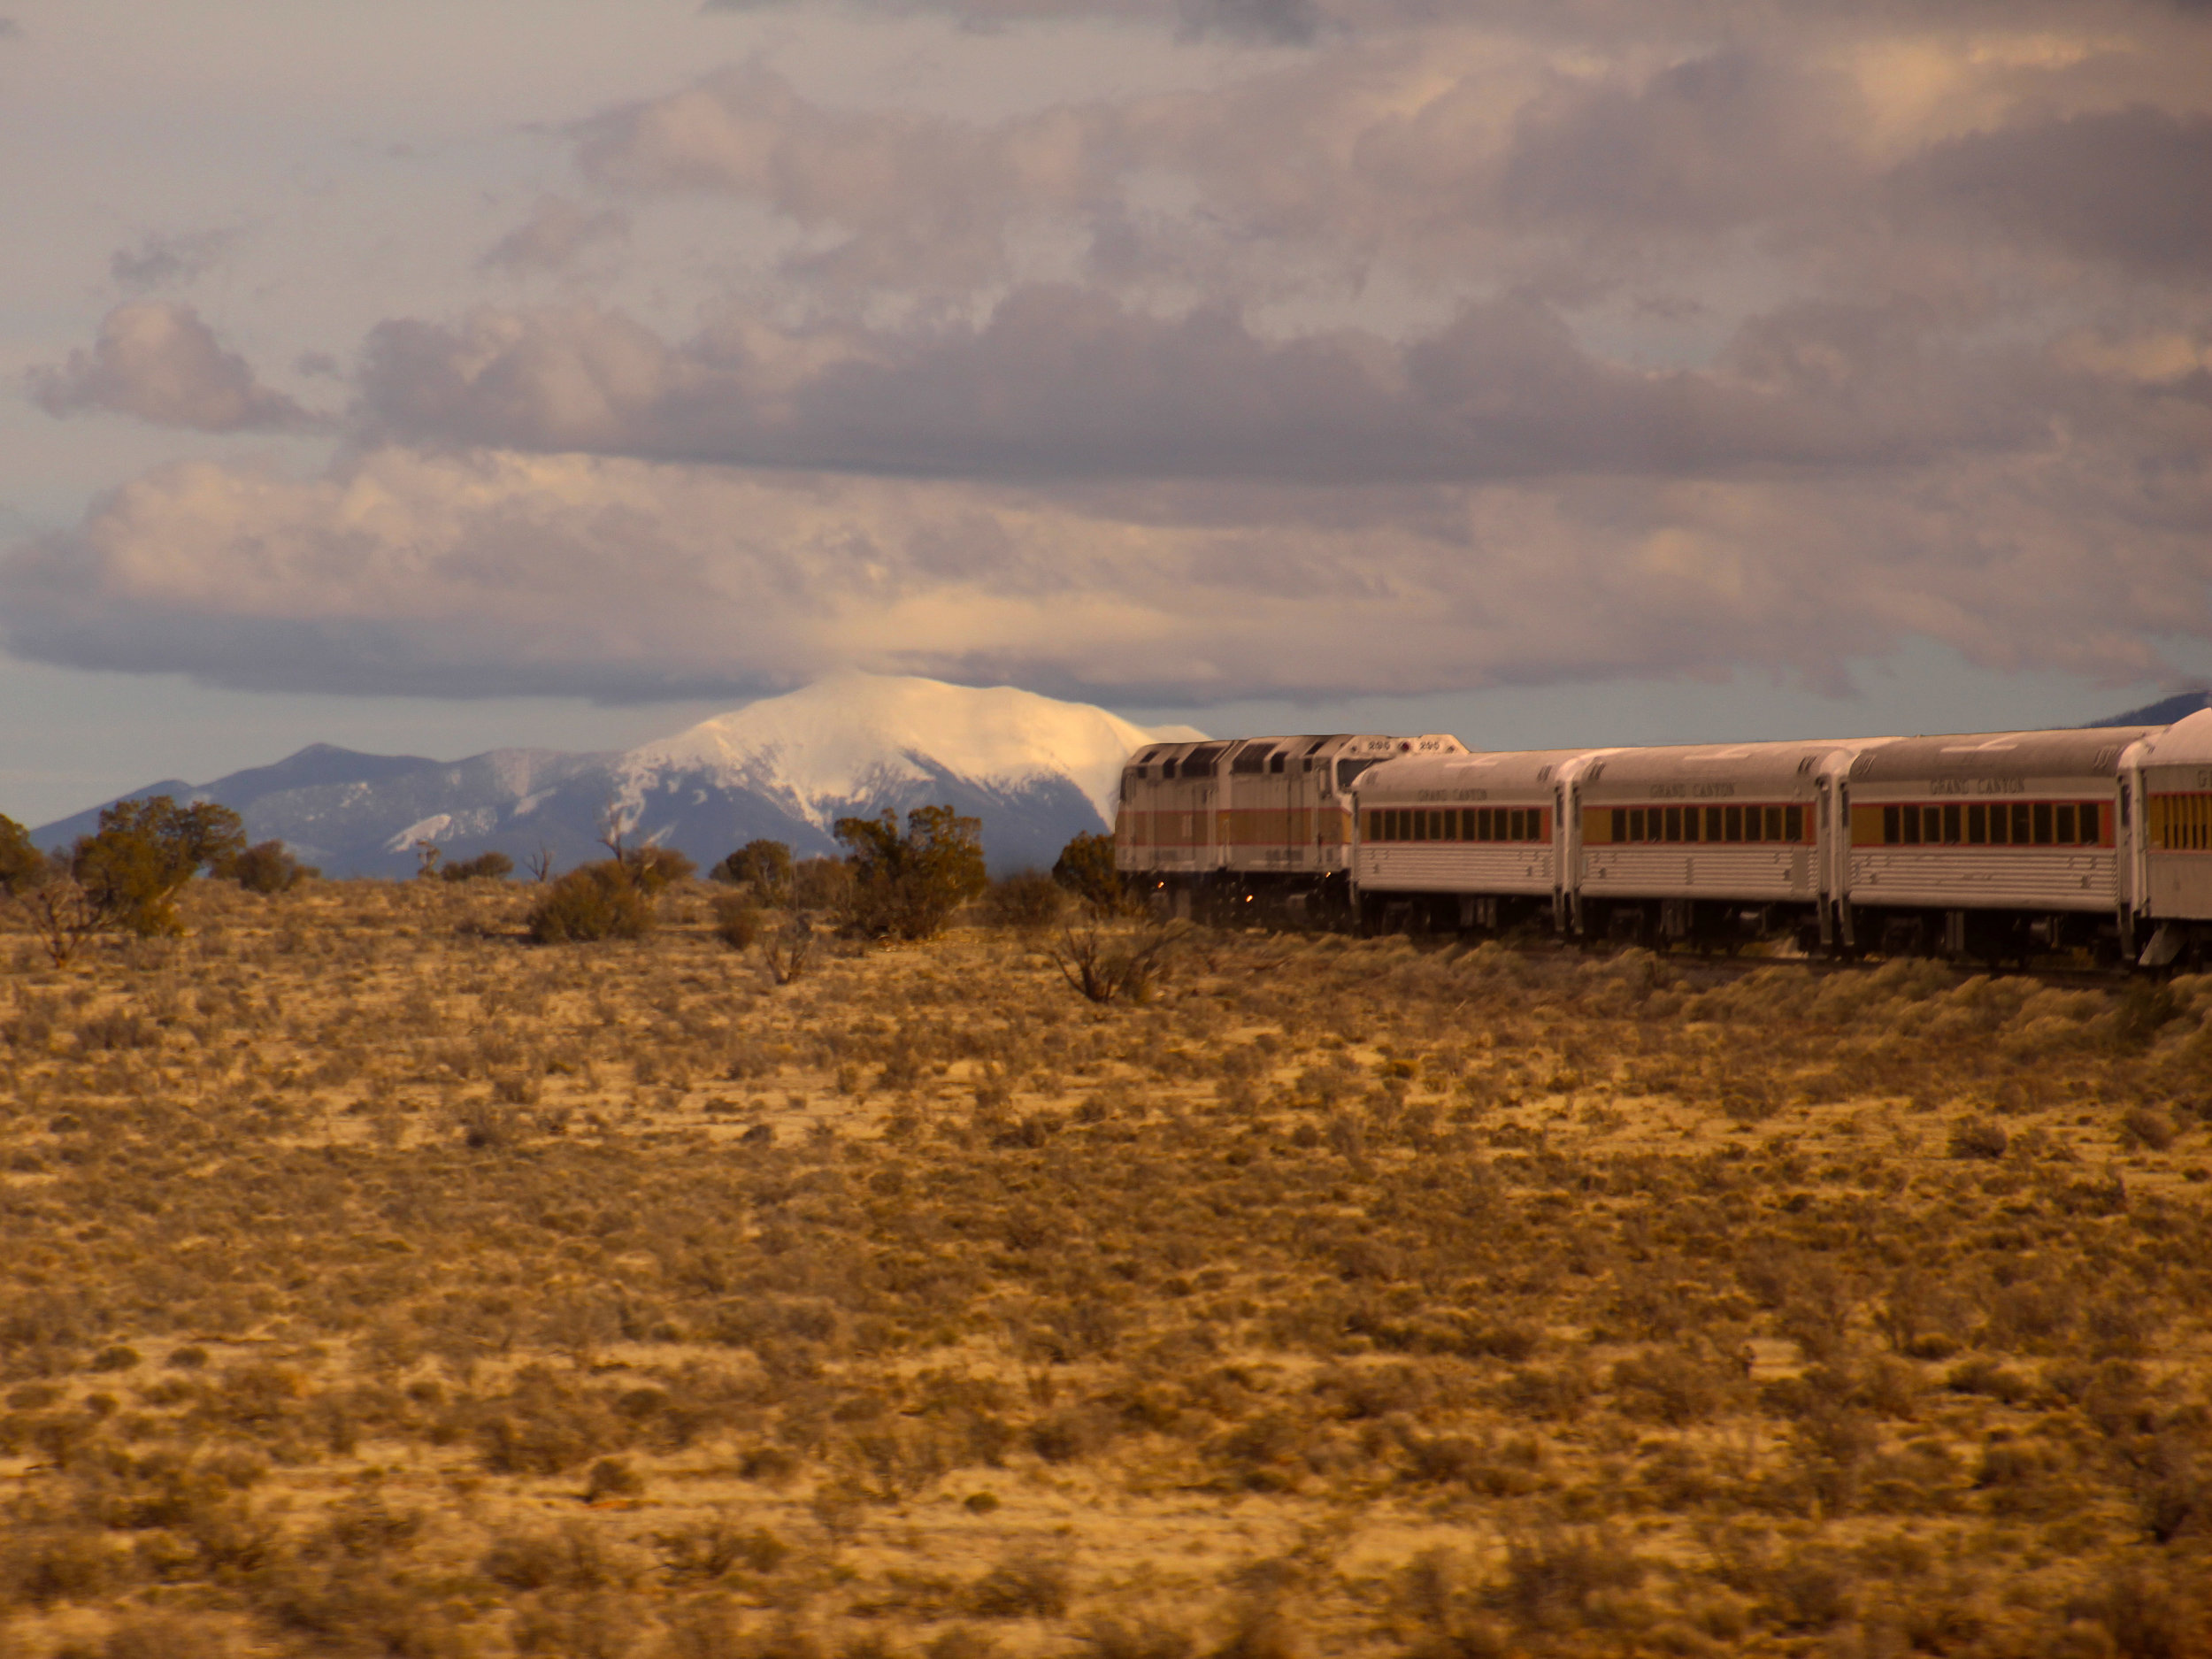 The Grand Canyon Railway makes its way across the plains en route to the Grand Canyon's South Rim  © Joanne DiBona Photography